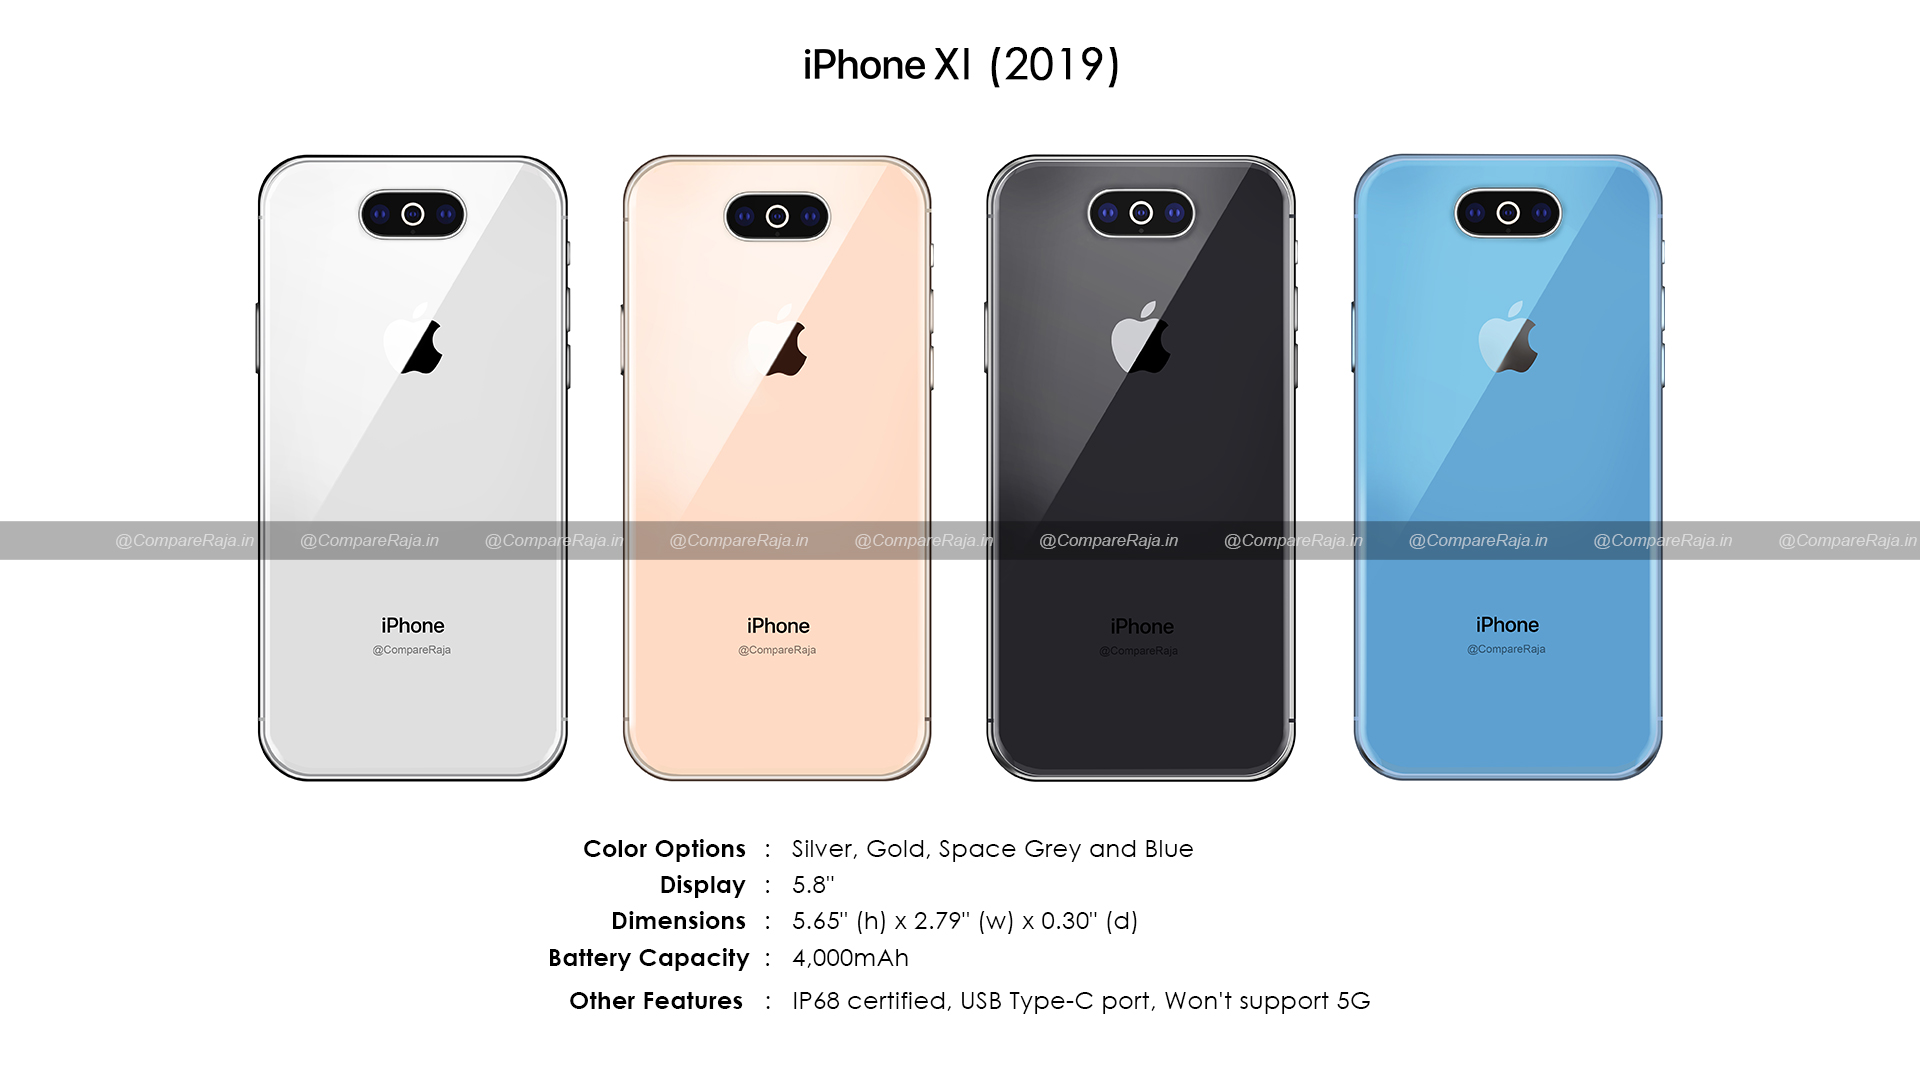 [CompareRaja EXCLUSIVE] Apple iPhones XI (2019) Color, Design, Display and Battery Details Leaked